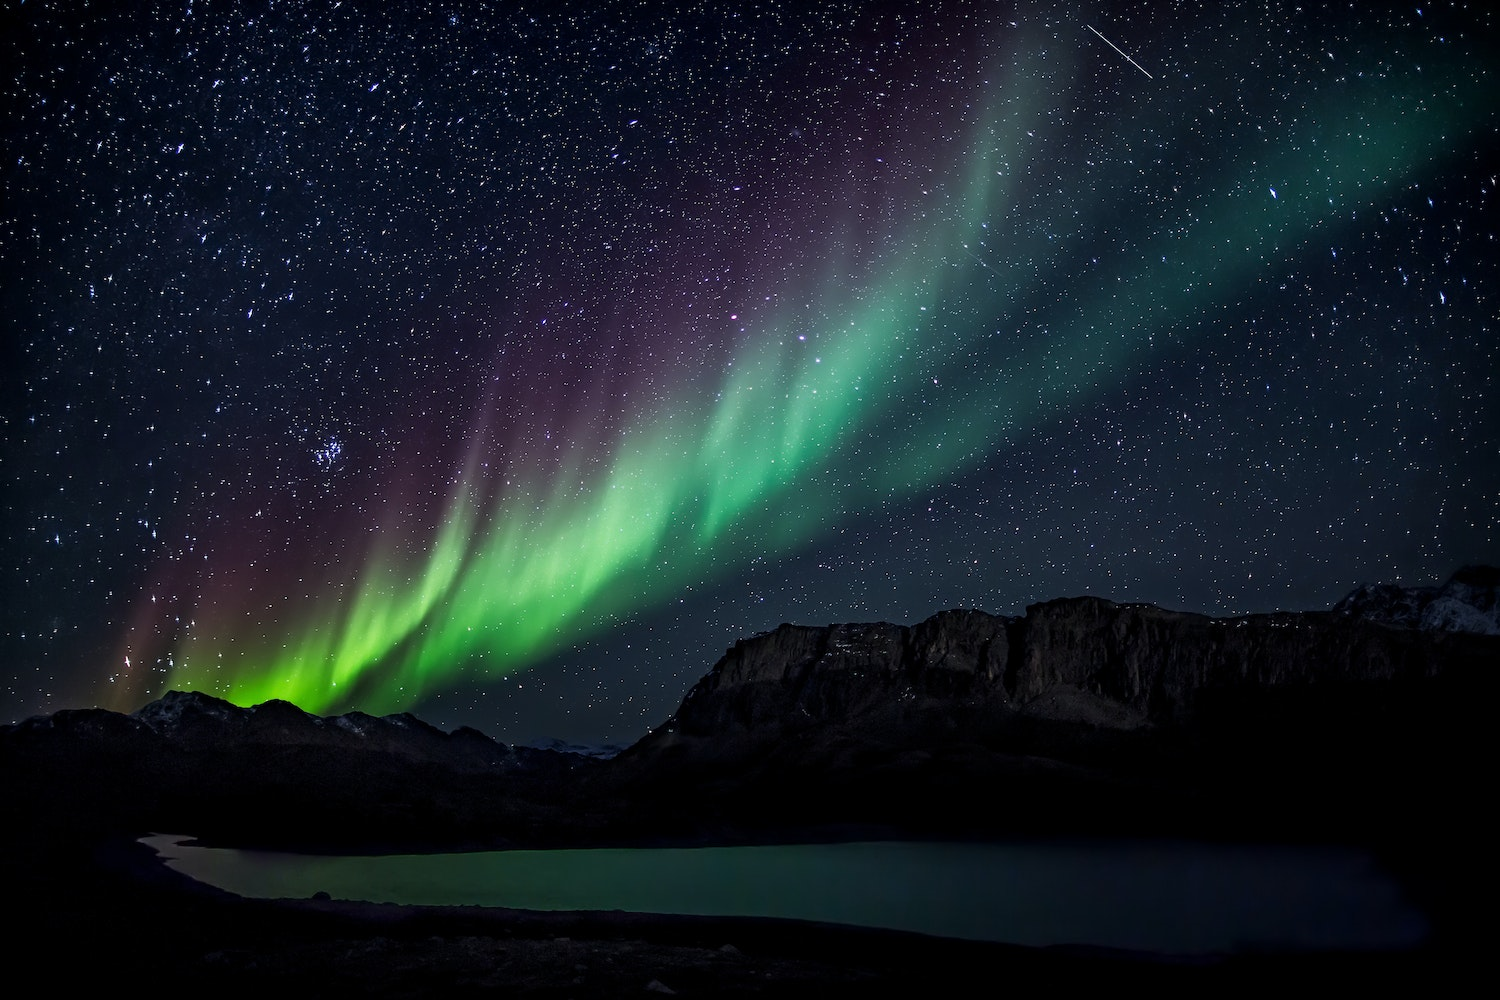 1000 amazing northern lights photos 183 pexels 183 free stock